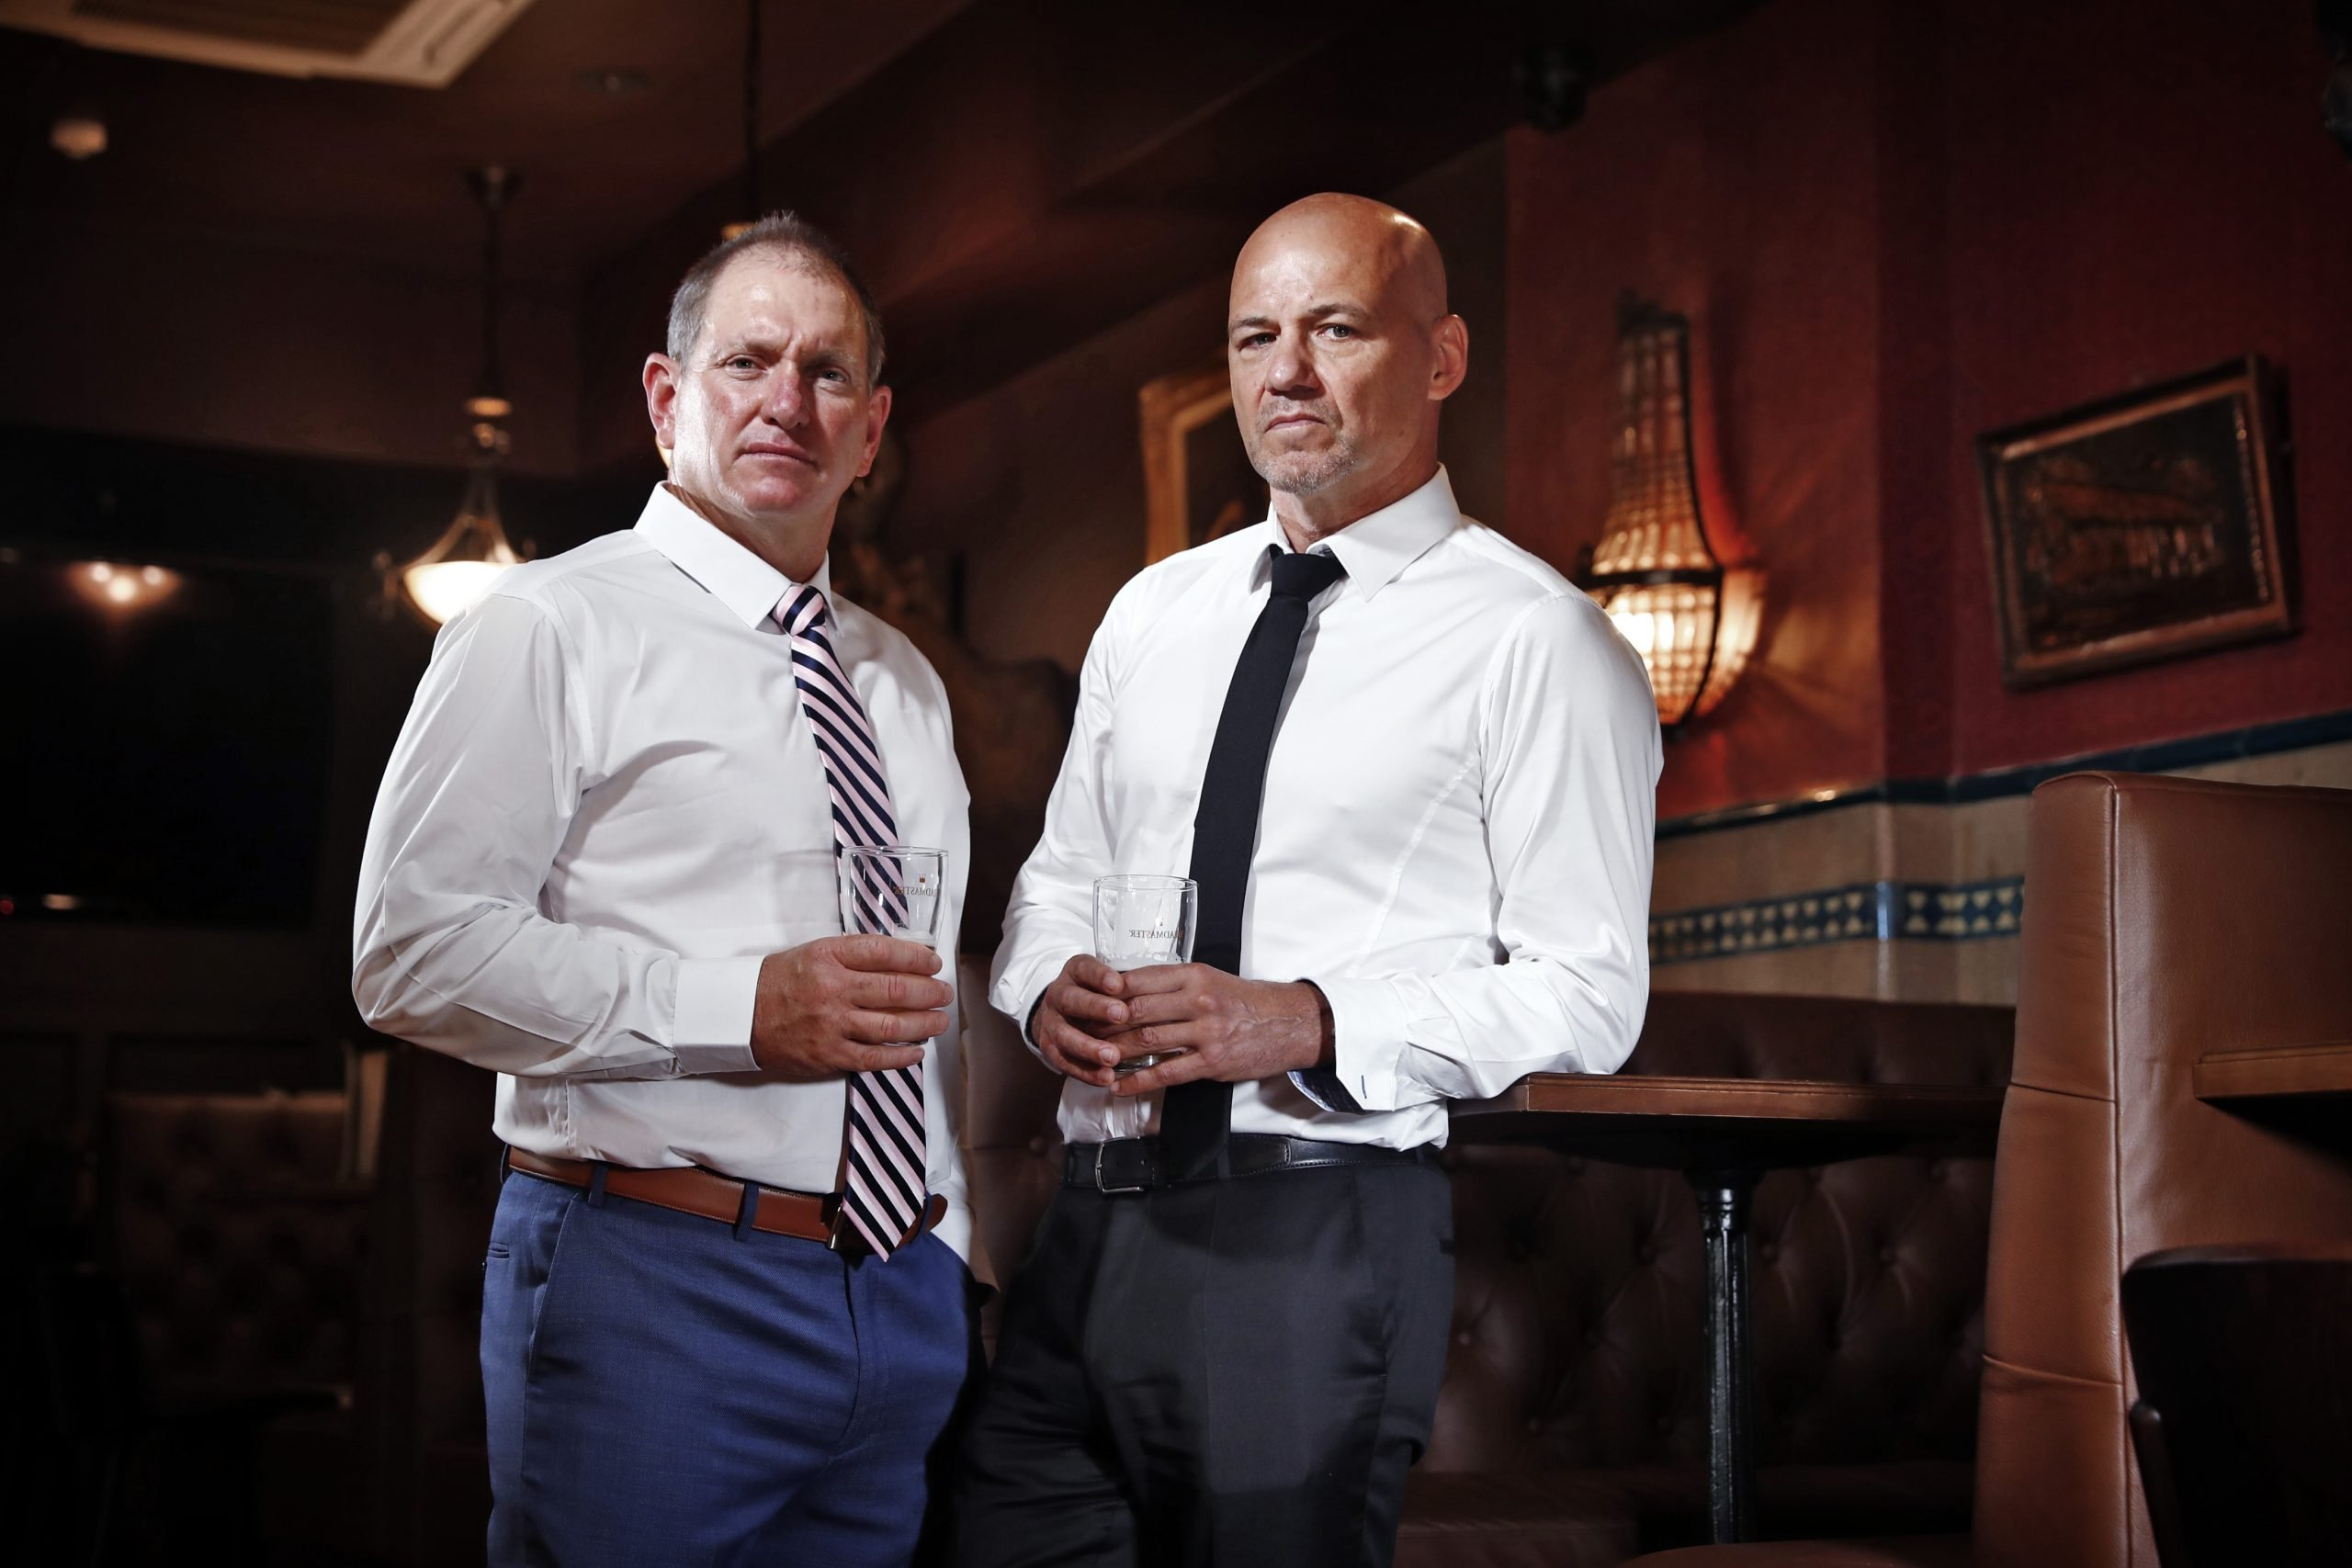 SUNDAY TELEGRAPH  - 15/11/19  ***WARNING*** MUST NOT USE BEFORE CLEARING WITH ST PIC ED JEFF DARMANIN *** IMAGE IS FOR PODCAST SERIES ****  Ex detective Gary Jubelin (right) pictured with his old partner Jason Evers at The Keg and Brew pub in Surry Hills. Picture: Sam Ruttyn